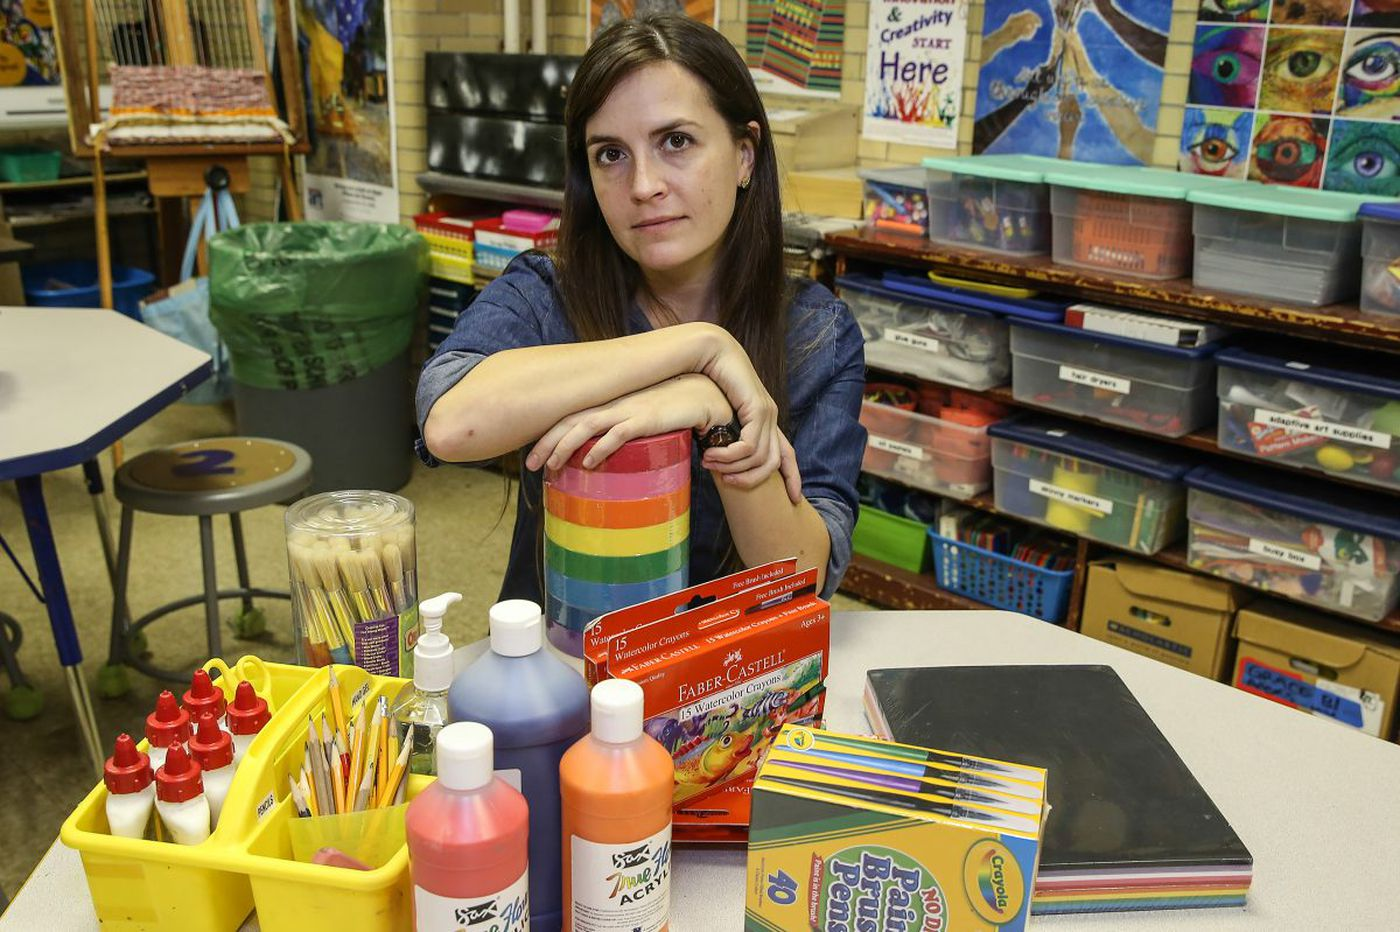 Teachers spend hundreds from their pockets on school supplies: 'Honestly, there's no choice'